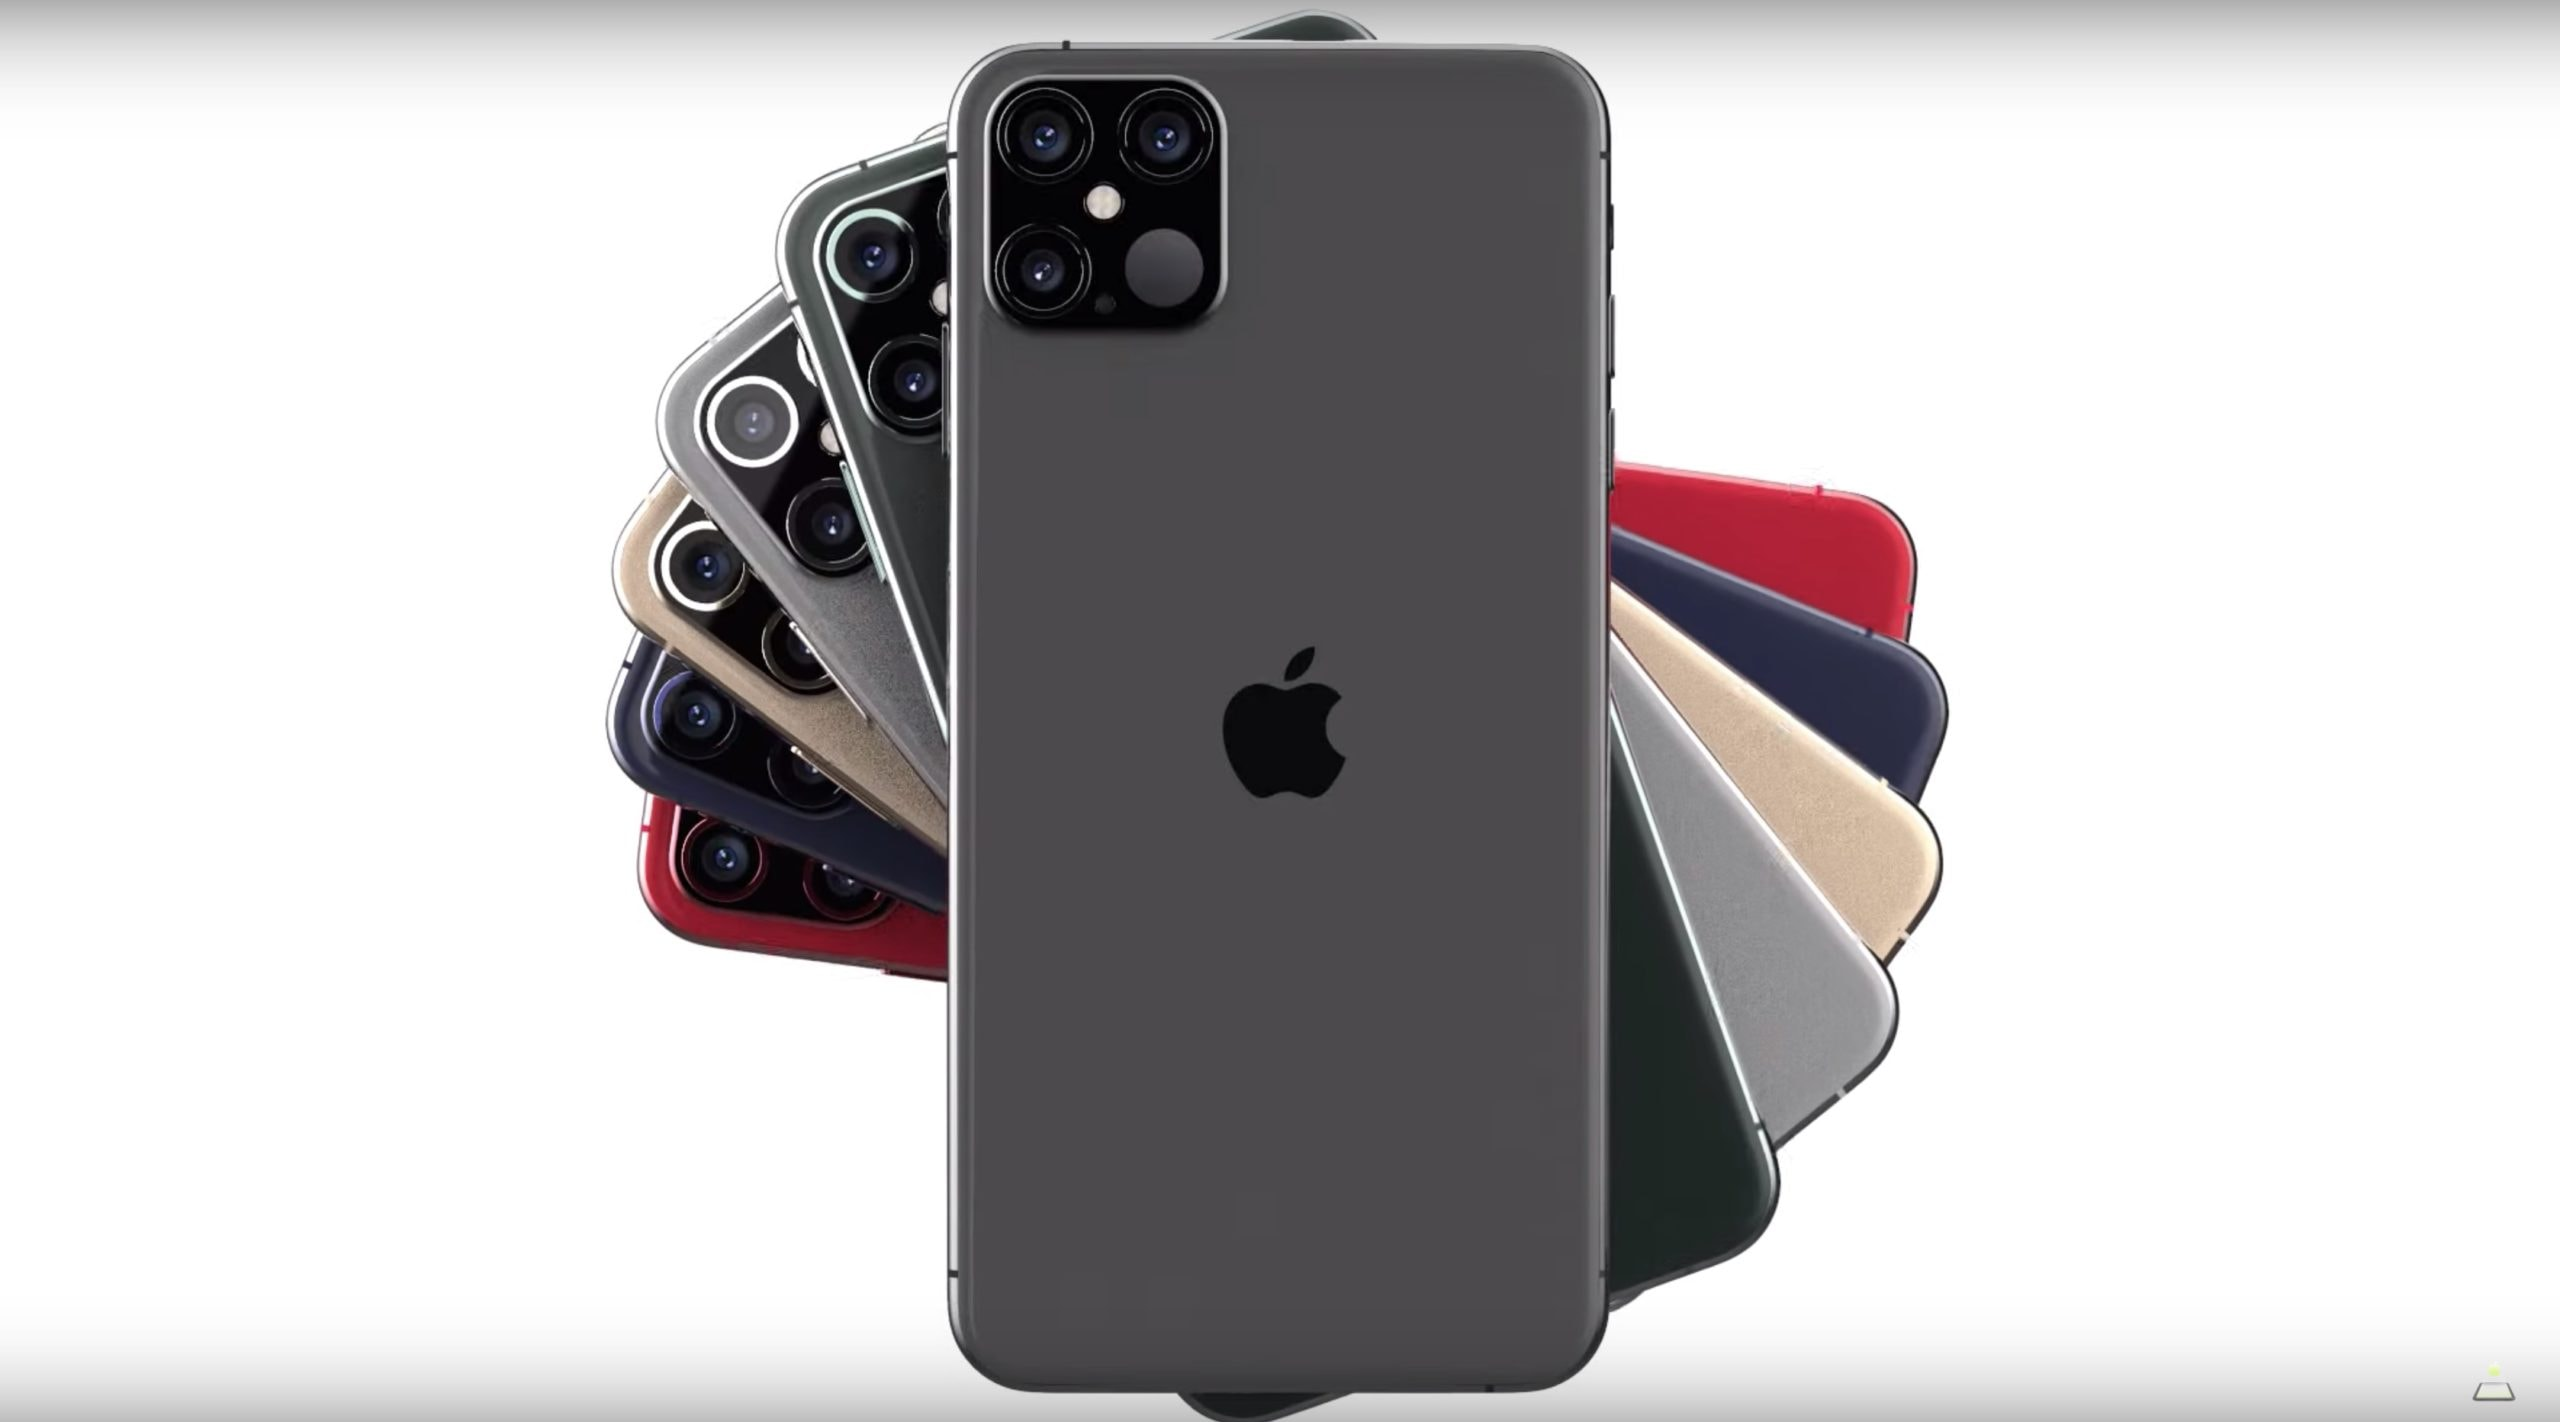 Drool-worthy iPhone 12 Pro concept shows off boxy body and new LiDAR sensor  | Cult of Mac